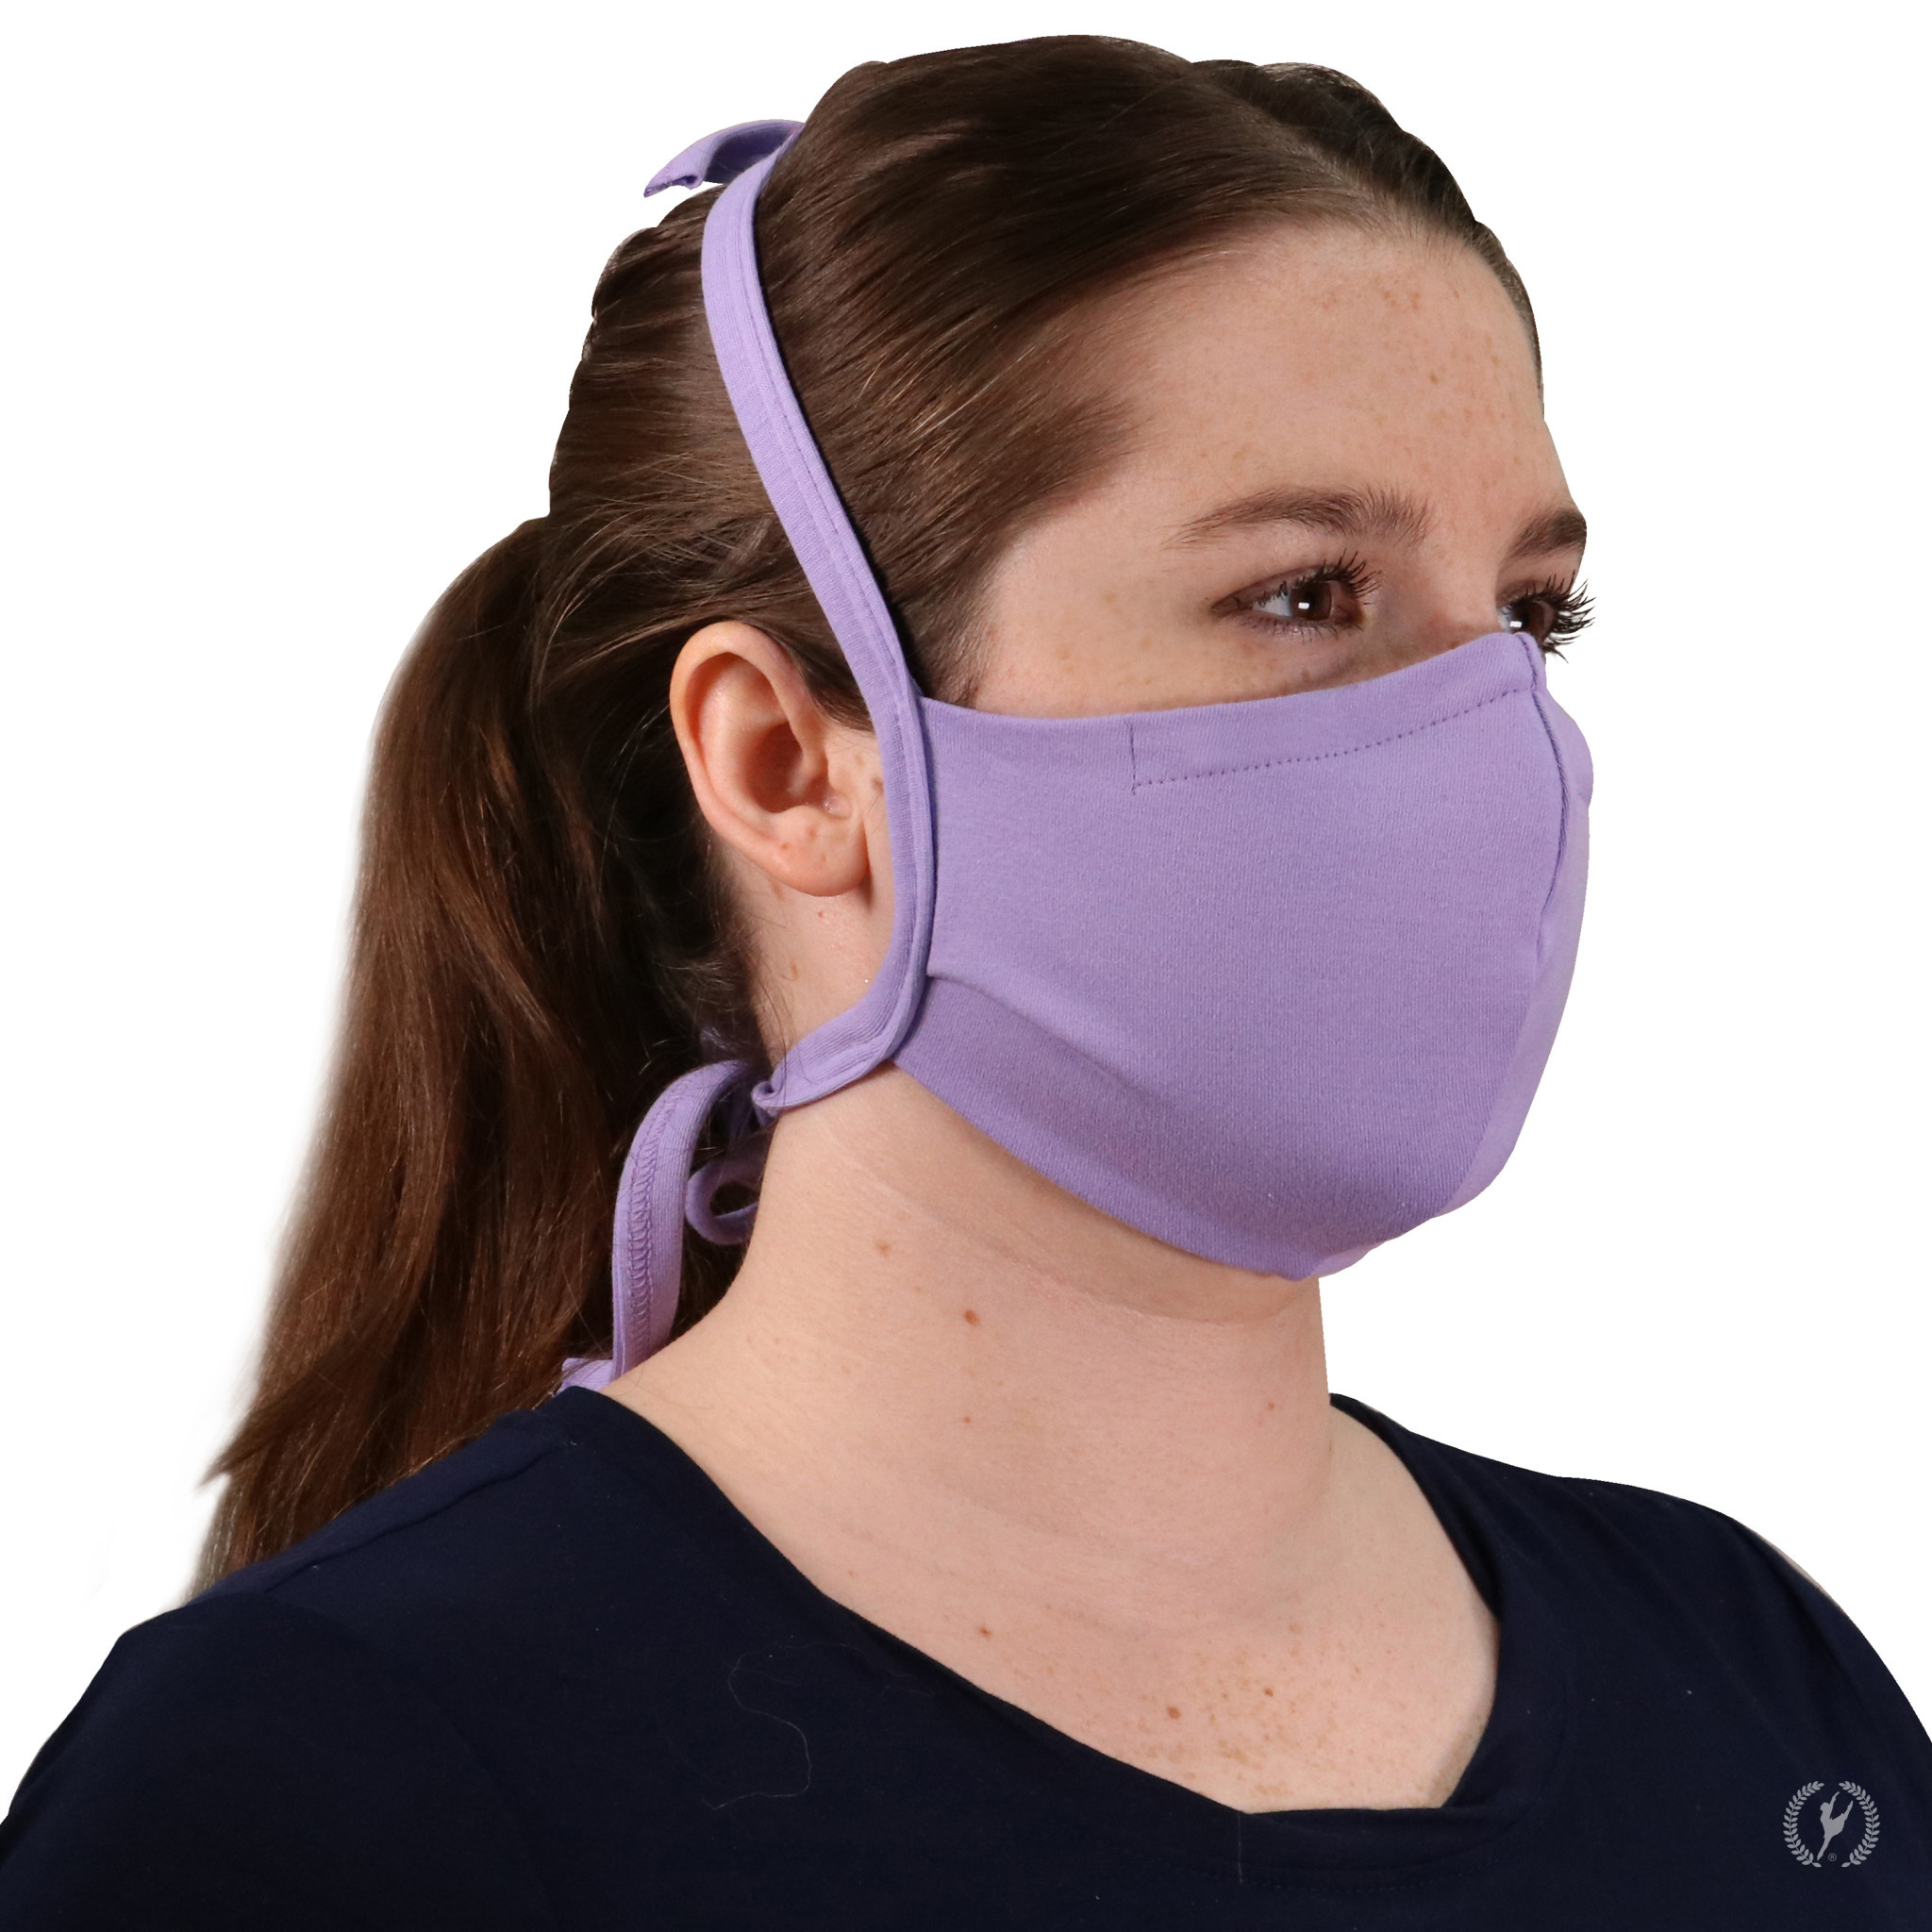 Eurotard PPE Reusable Face Mask, Cotton